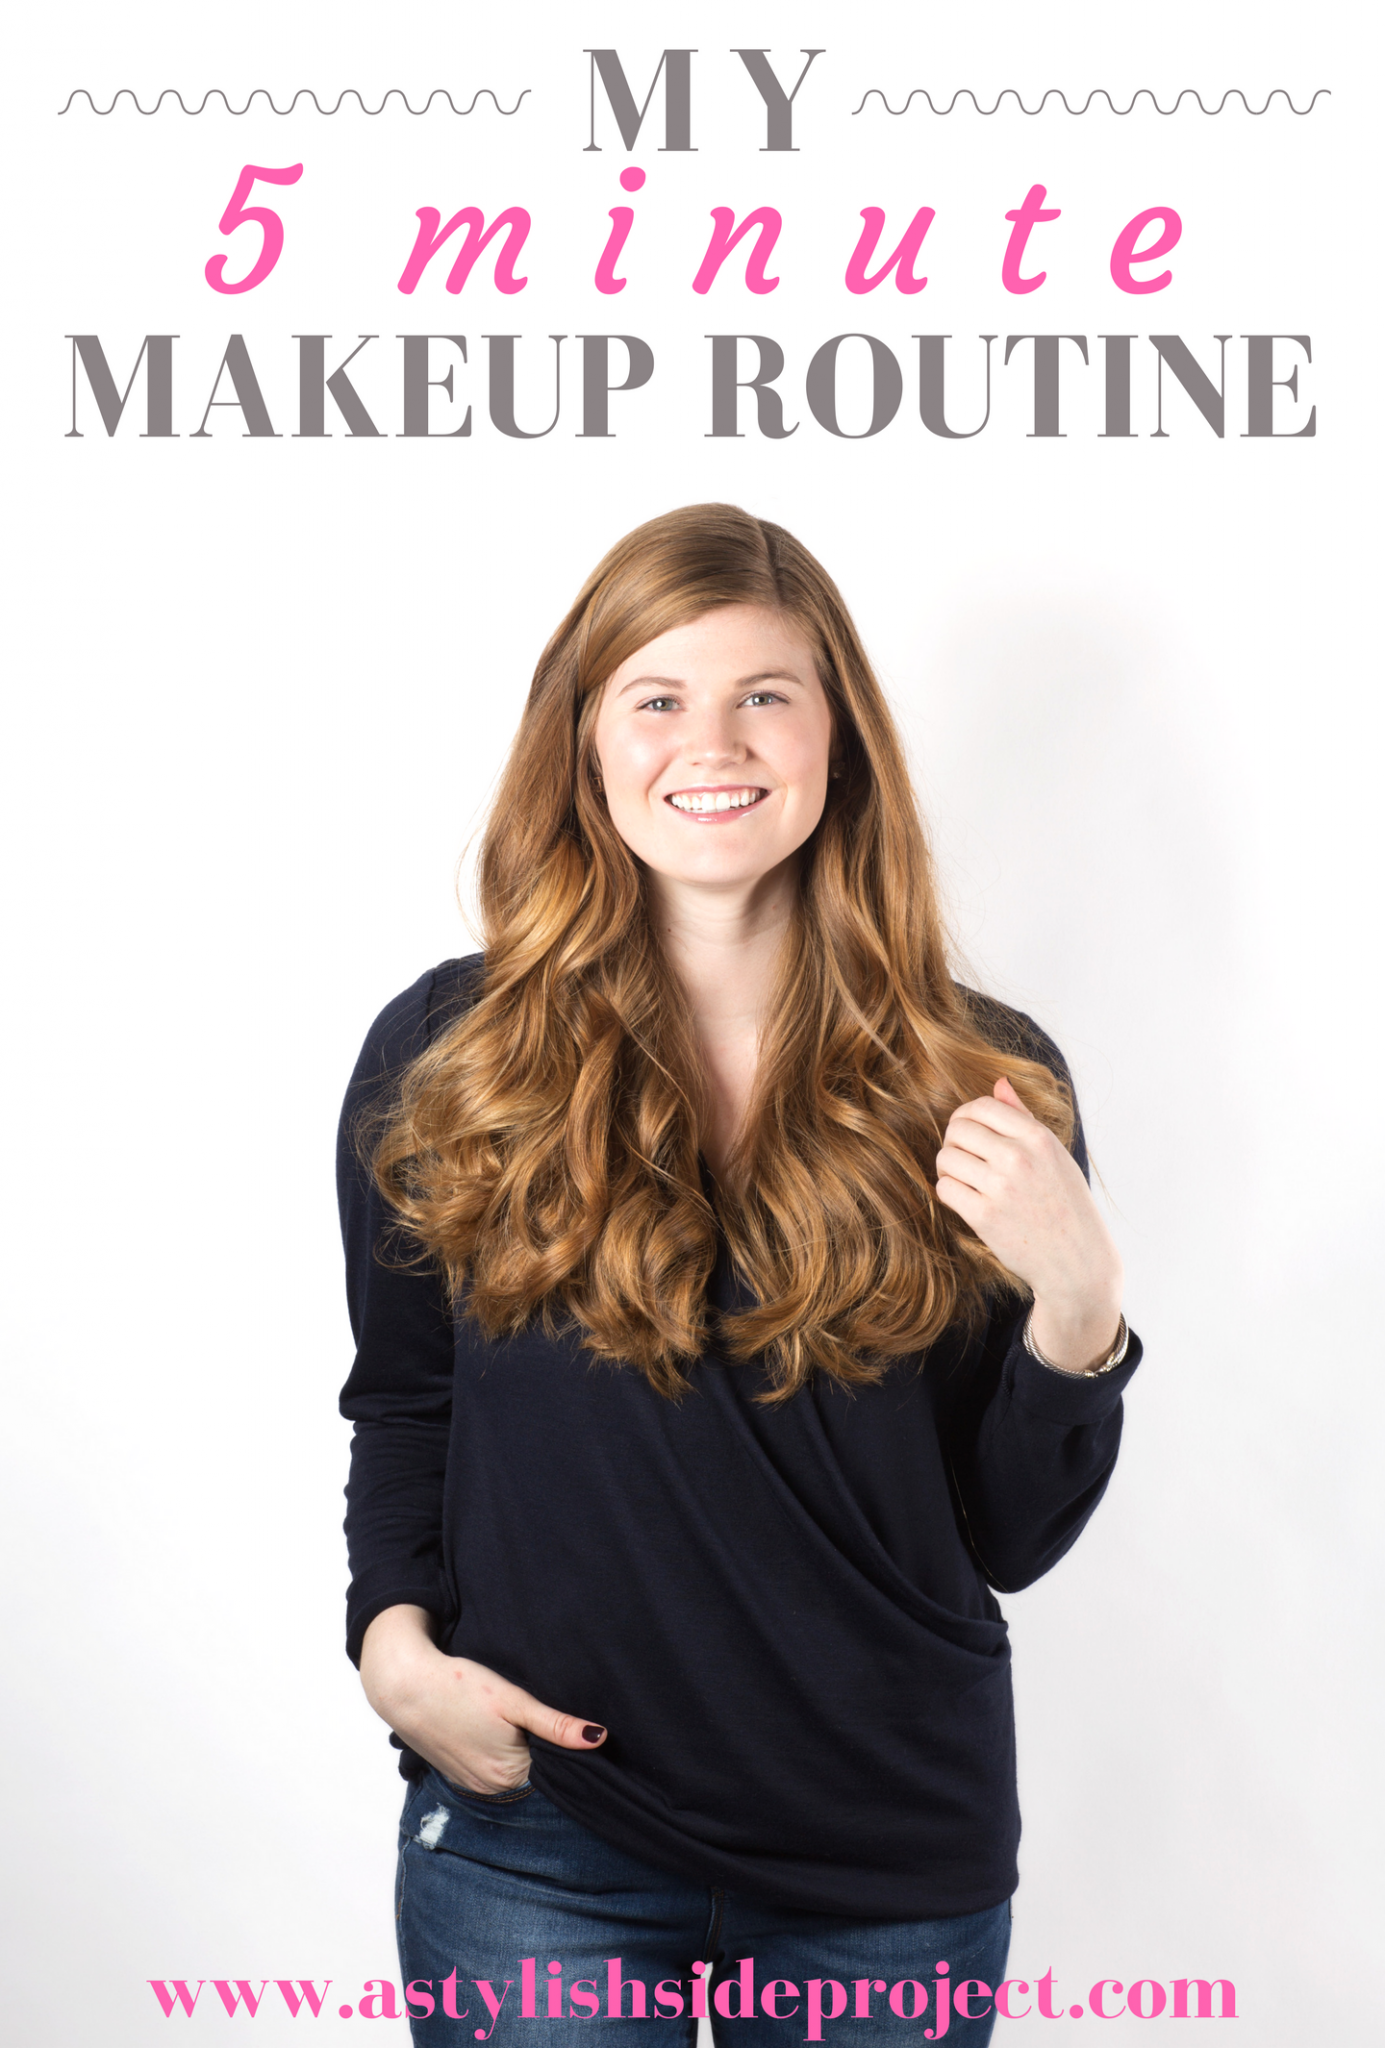 Lifestyle blogger Mollie Sheperdson shares her 5 minute everyday makeup routine